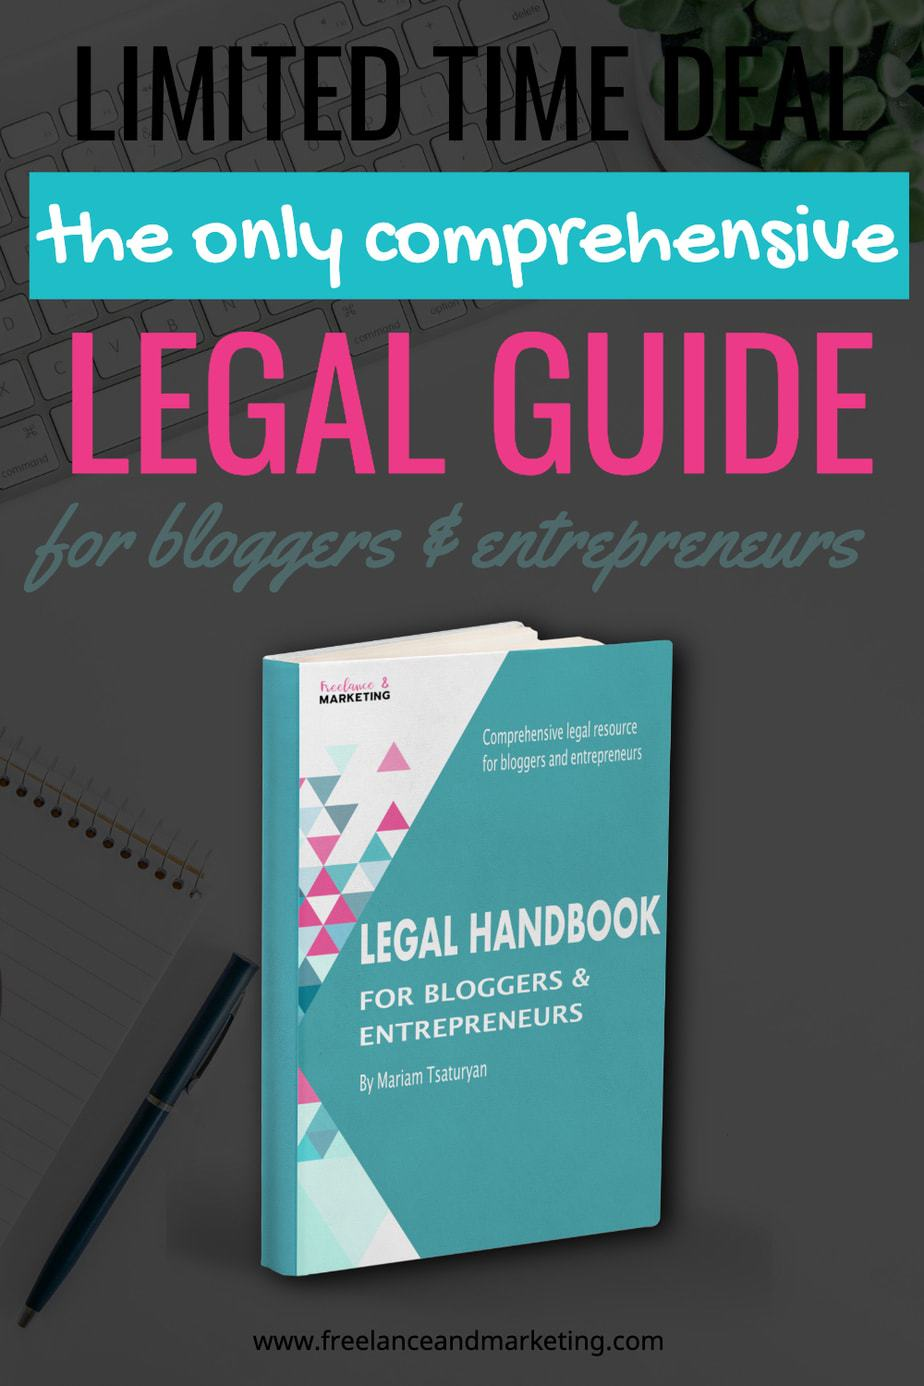 Legal Handbook for Bloggers & Entrepreneurs. A comprehensive legal guide for all bloggers and entrepreneurs for many different legal issues and matters. Learn all about copyright, trademark, GDPR, CCPA, and many other important legal matters. #bloglegally #legalhandbook #legalresource #ebook #promotion